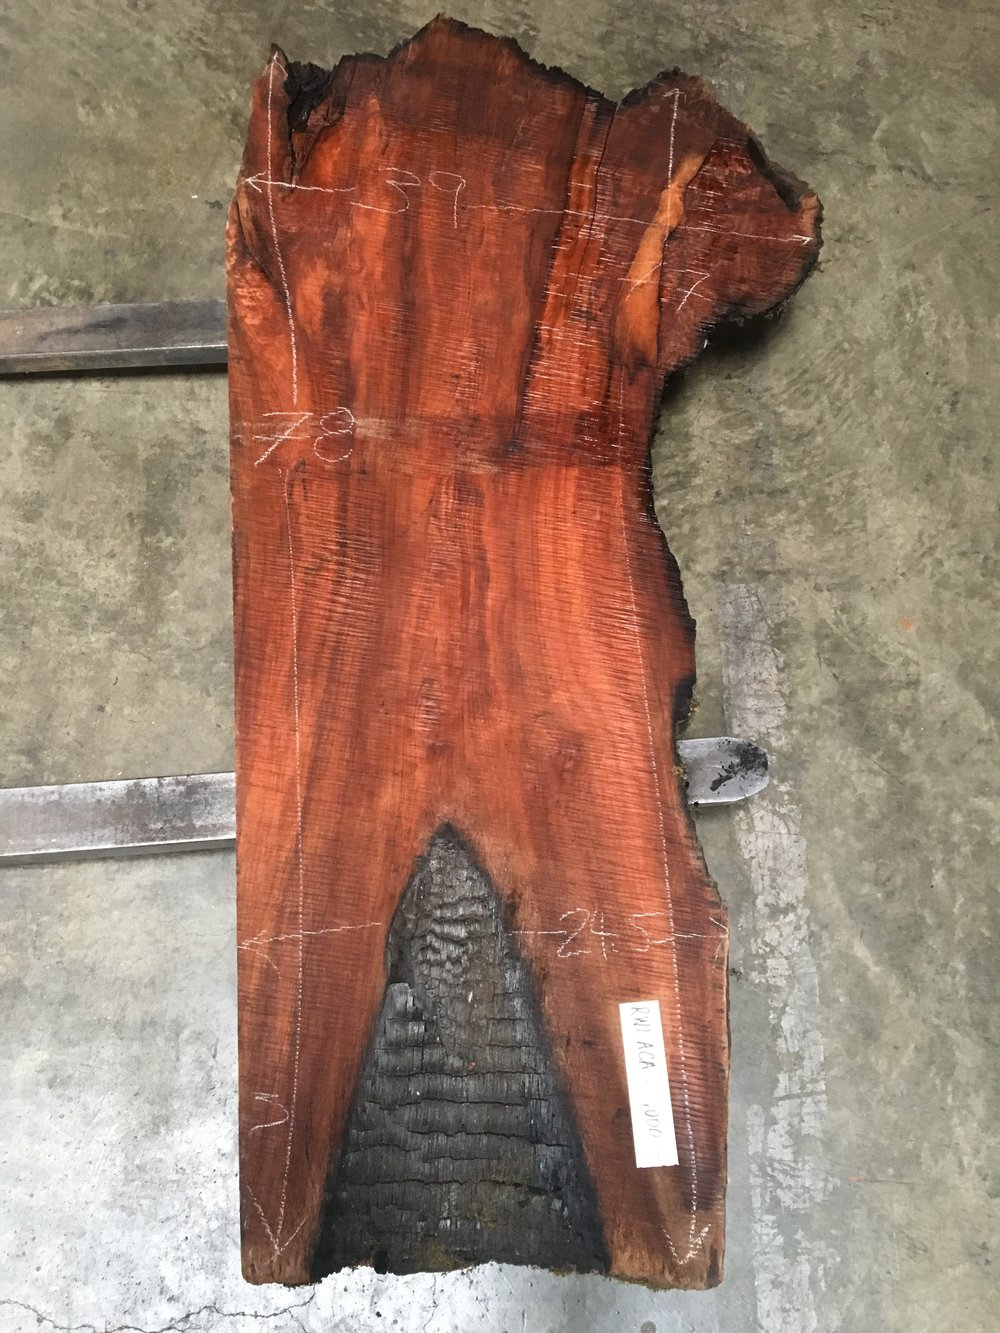 1200 year old redwood live edge slabs with burnt edges